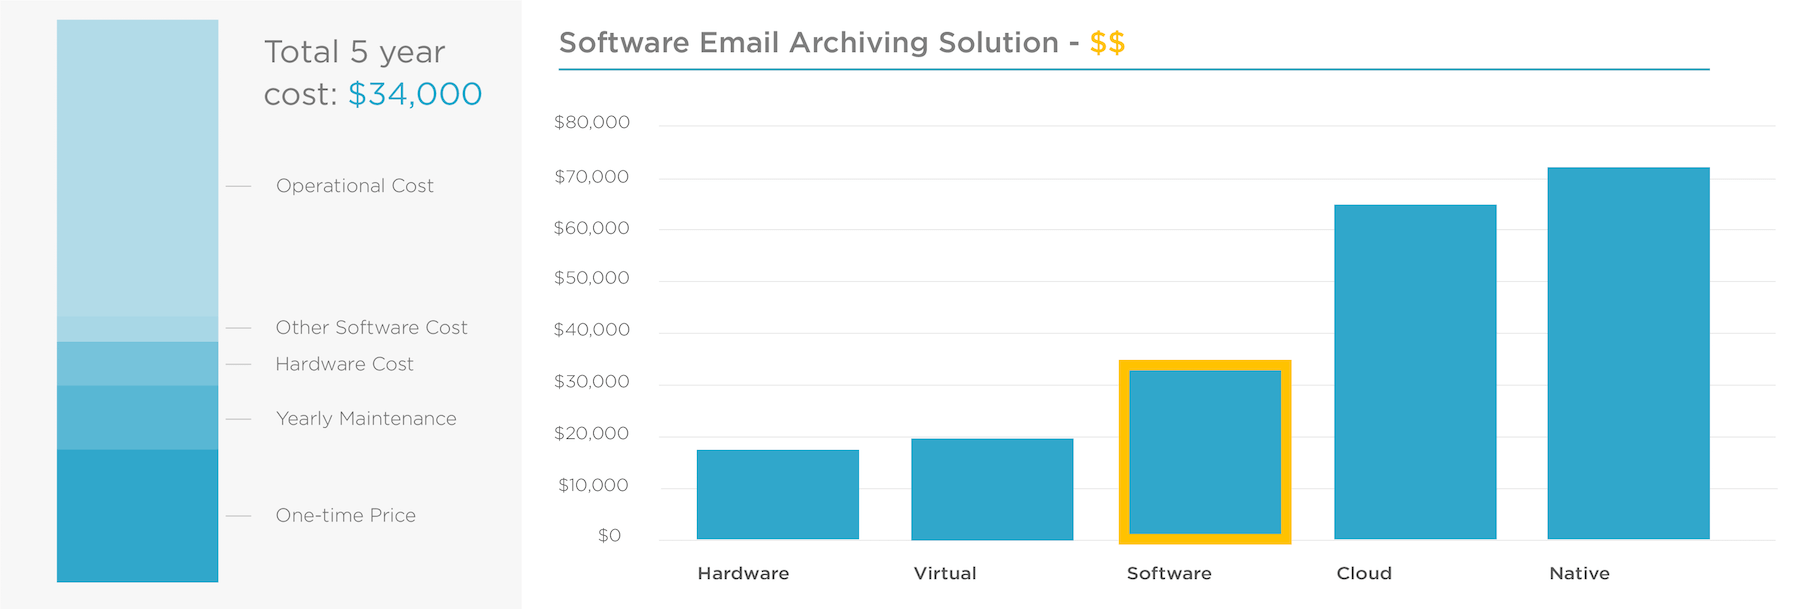 Email Archiving Solutions Comparison